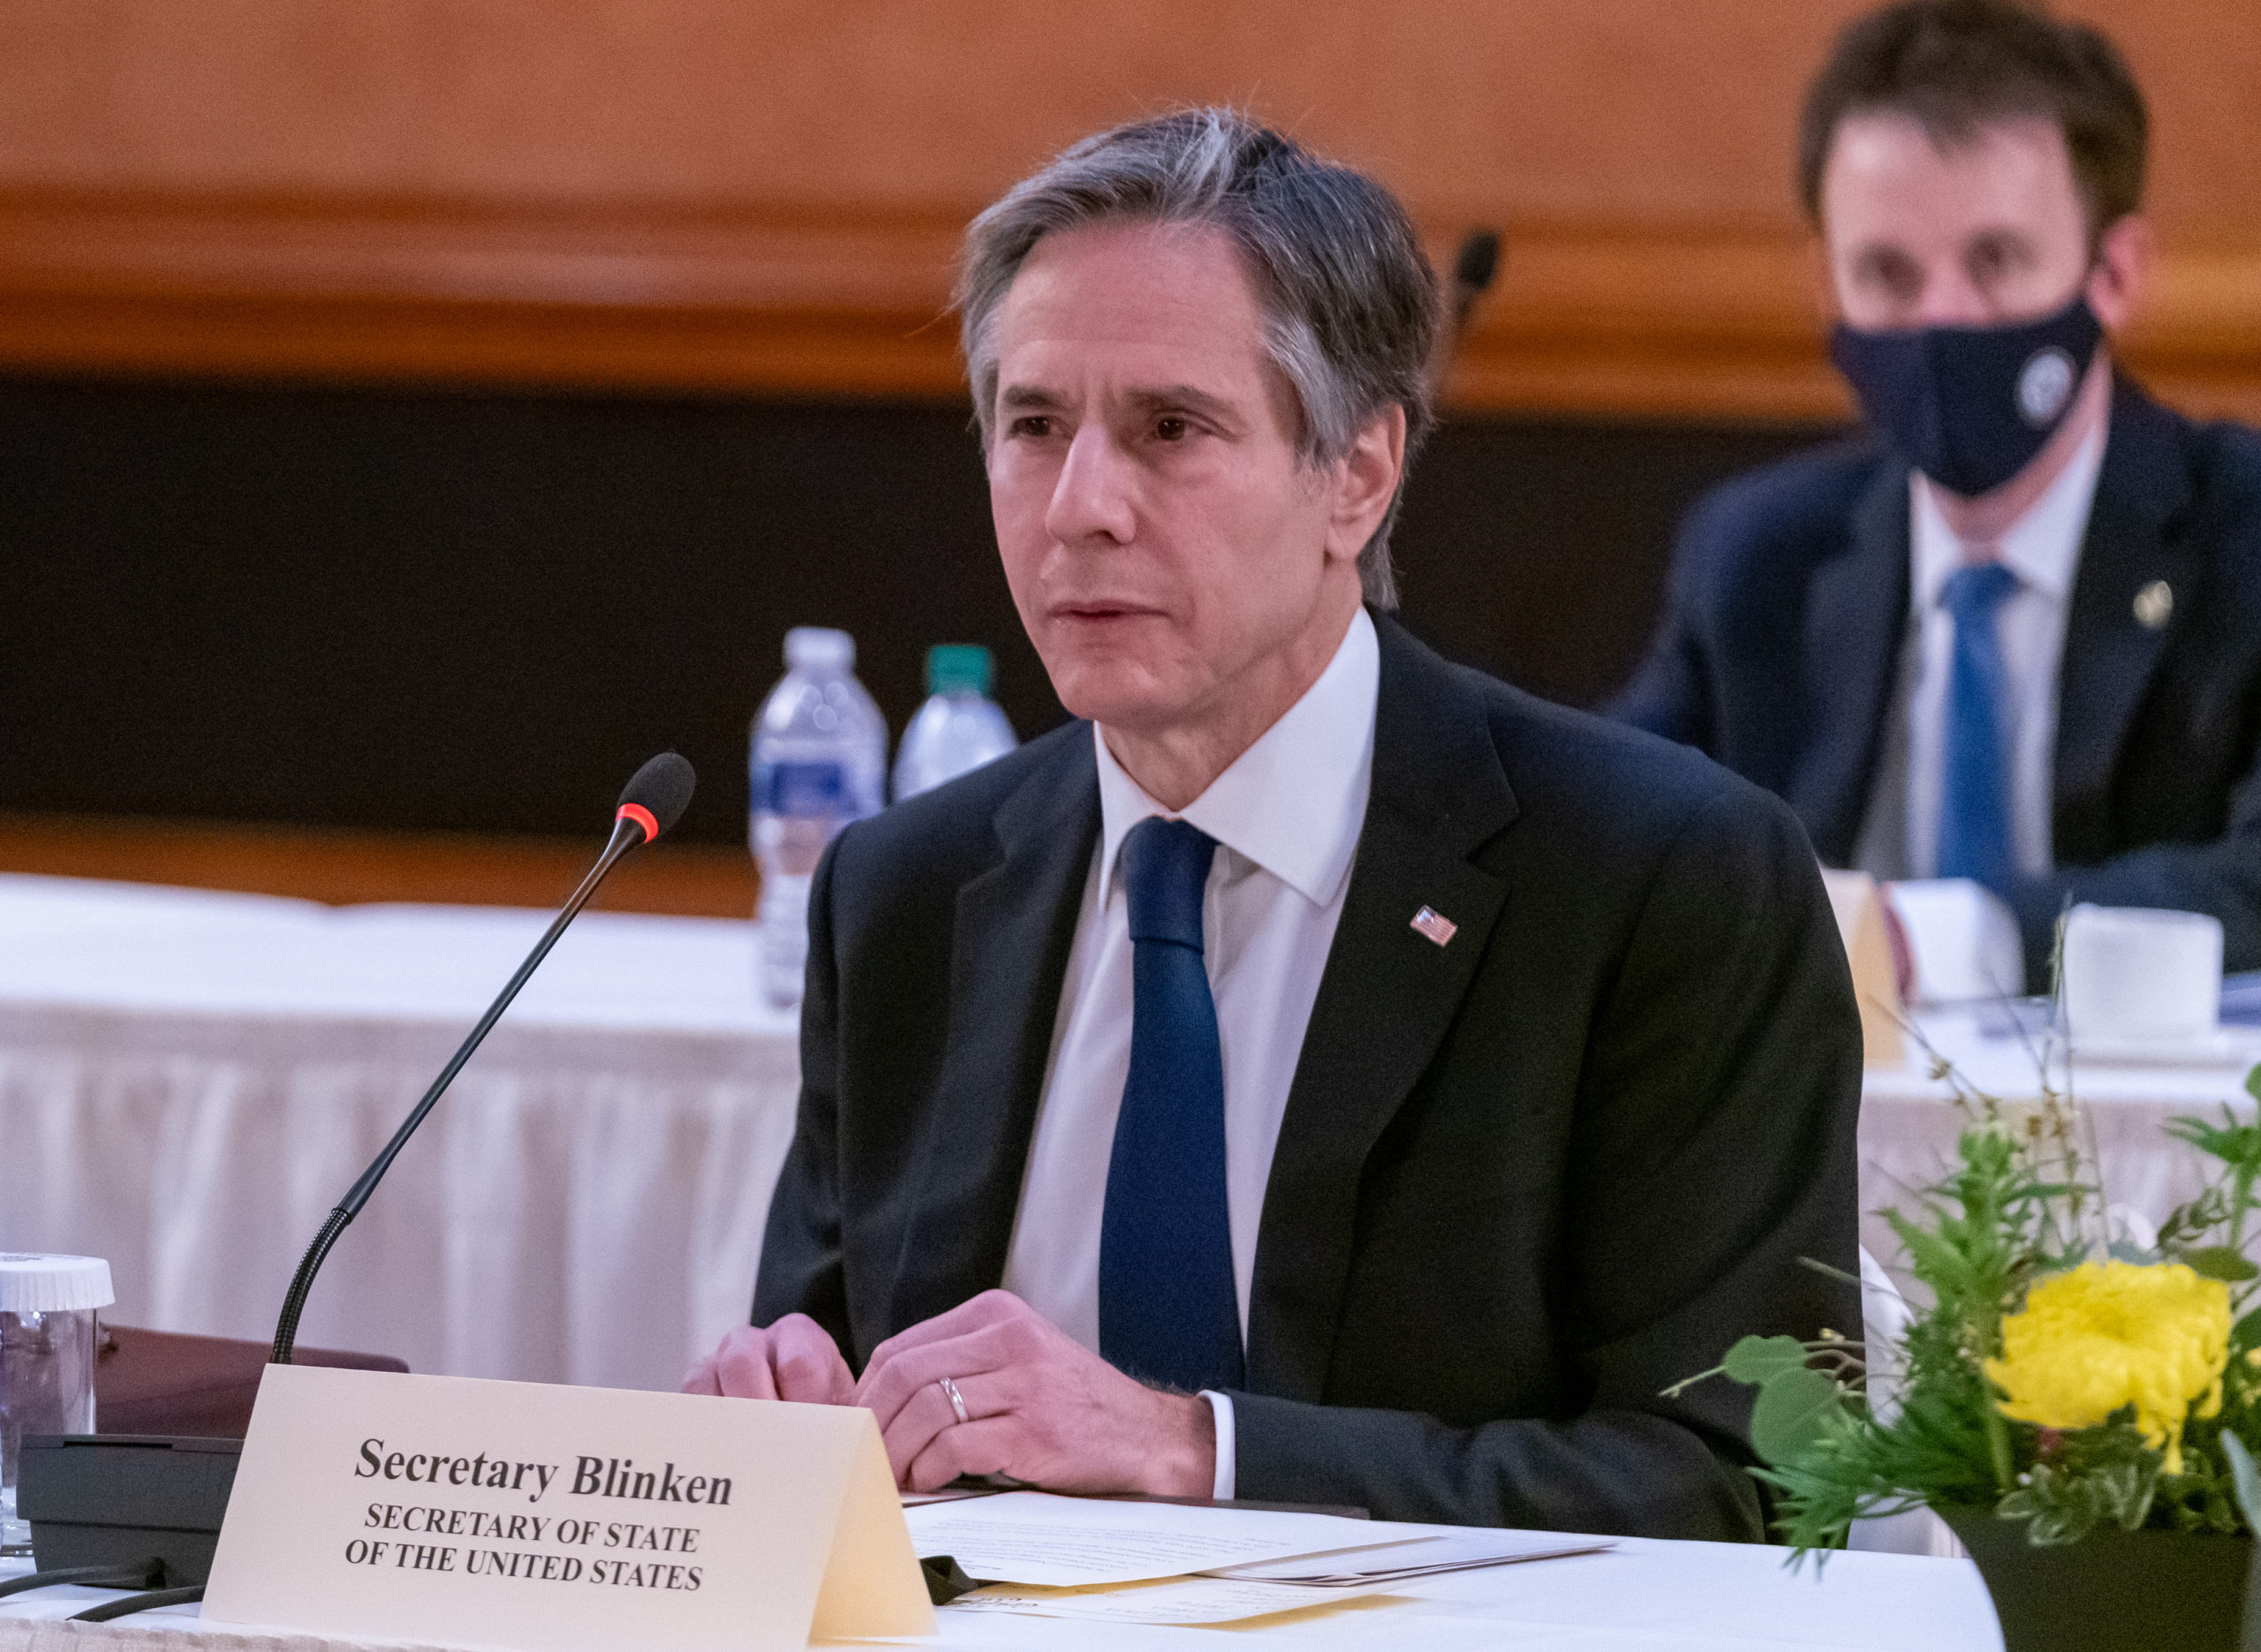 Blinken starts Mideast tour to secure Gaza truce and push for aid